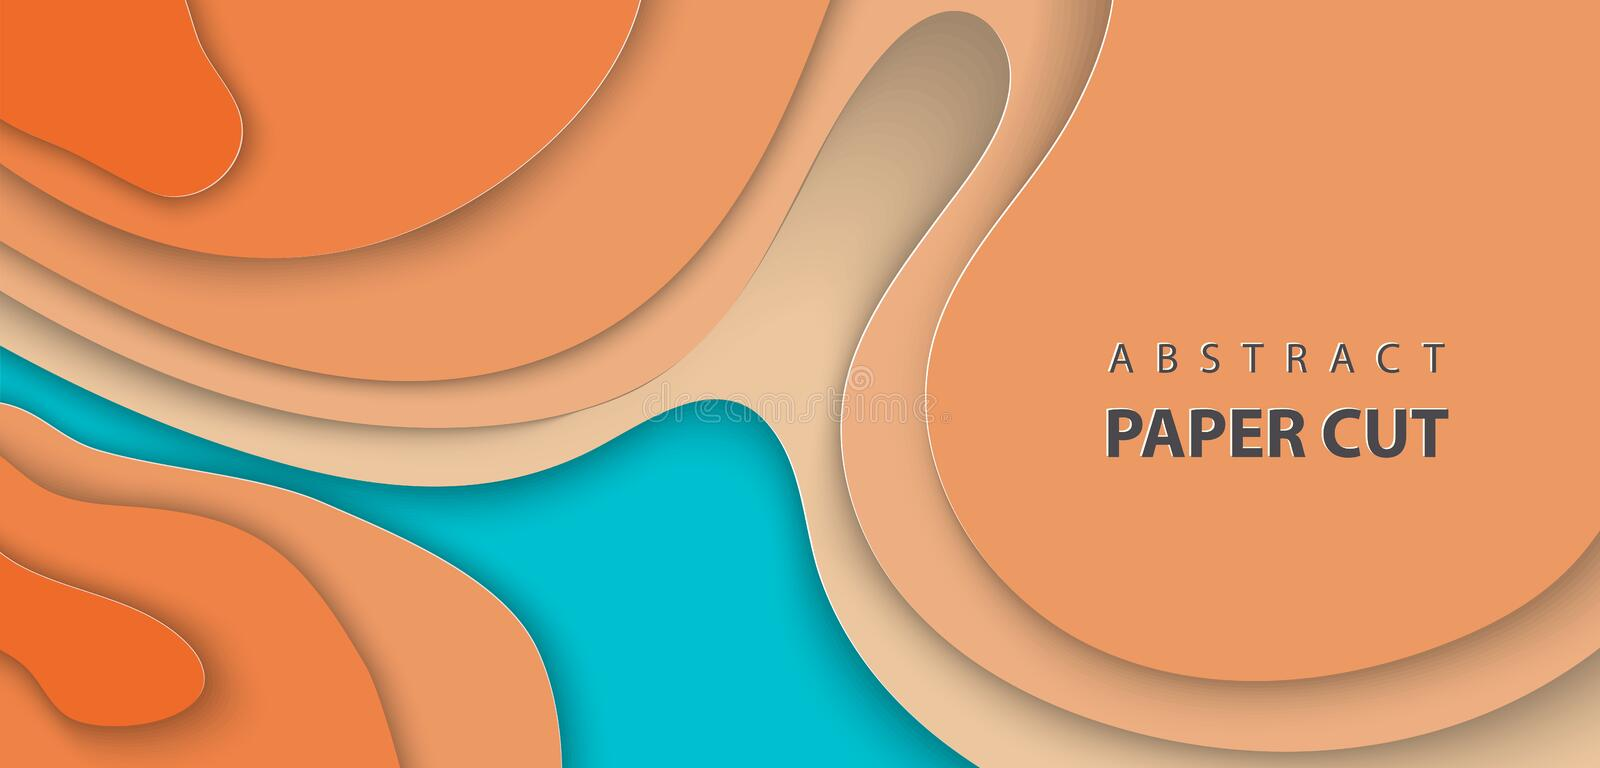 Vector background with blue and orange color paper cut waves shapes. 3D abstract paper art style, design layout vector illustration